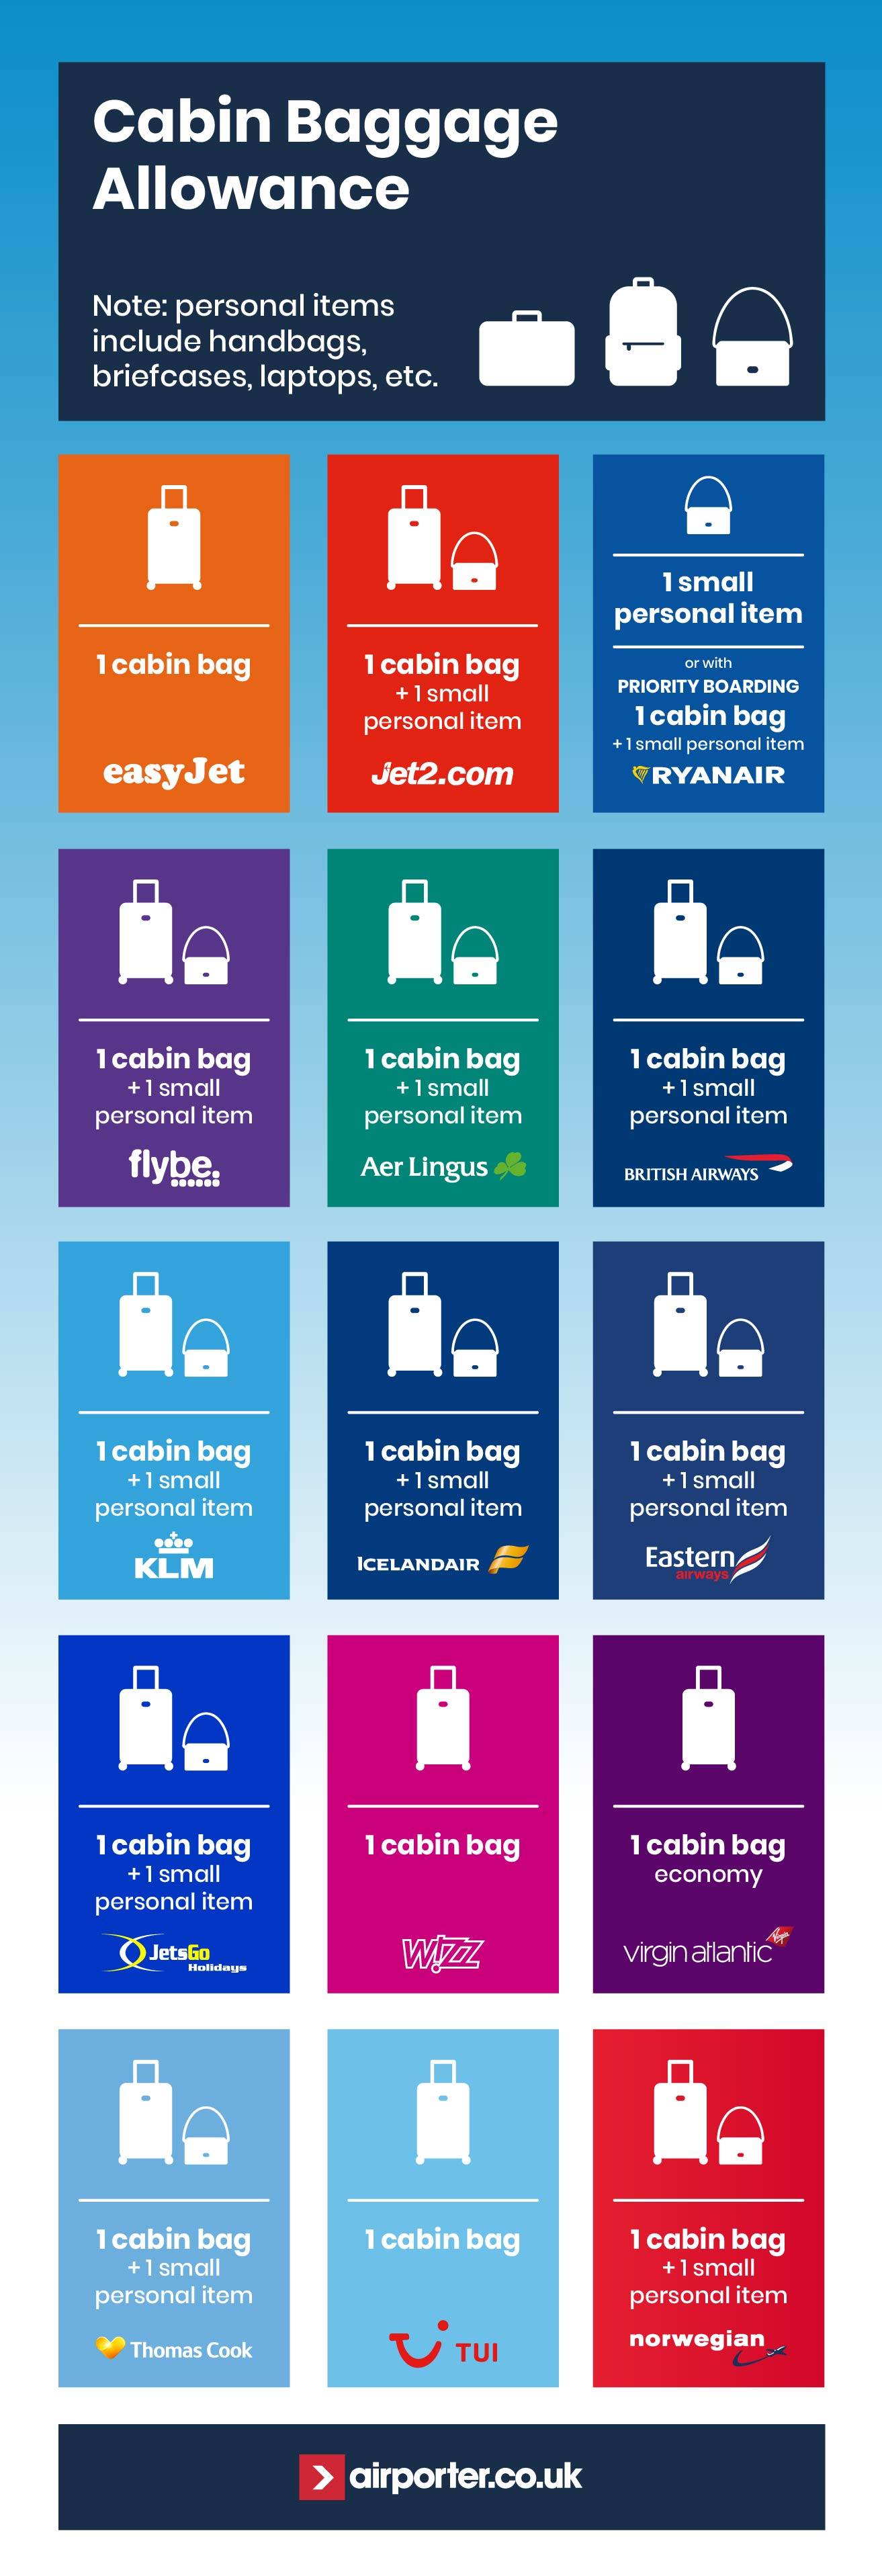 Cabin baggage allowance guide for Belfast Airport airlines